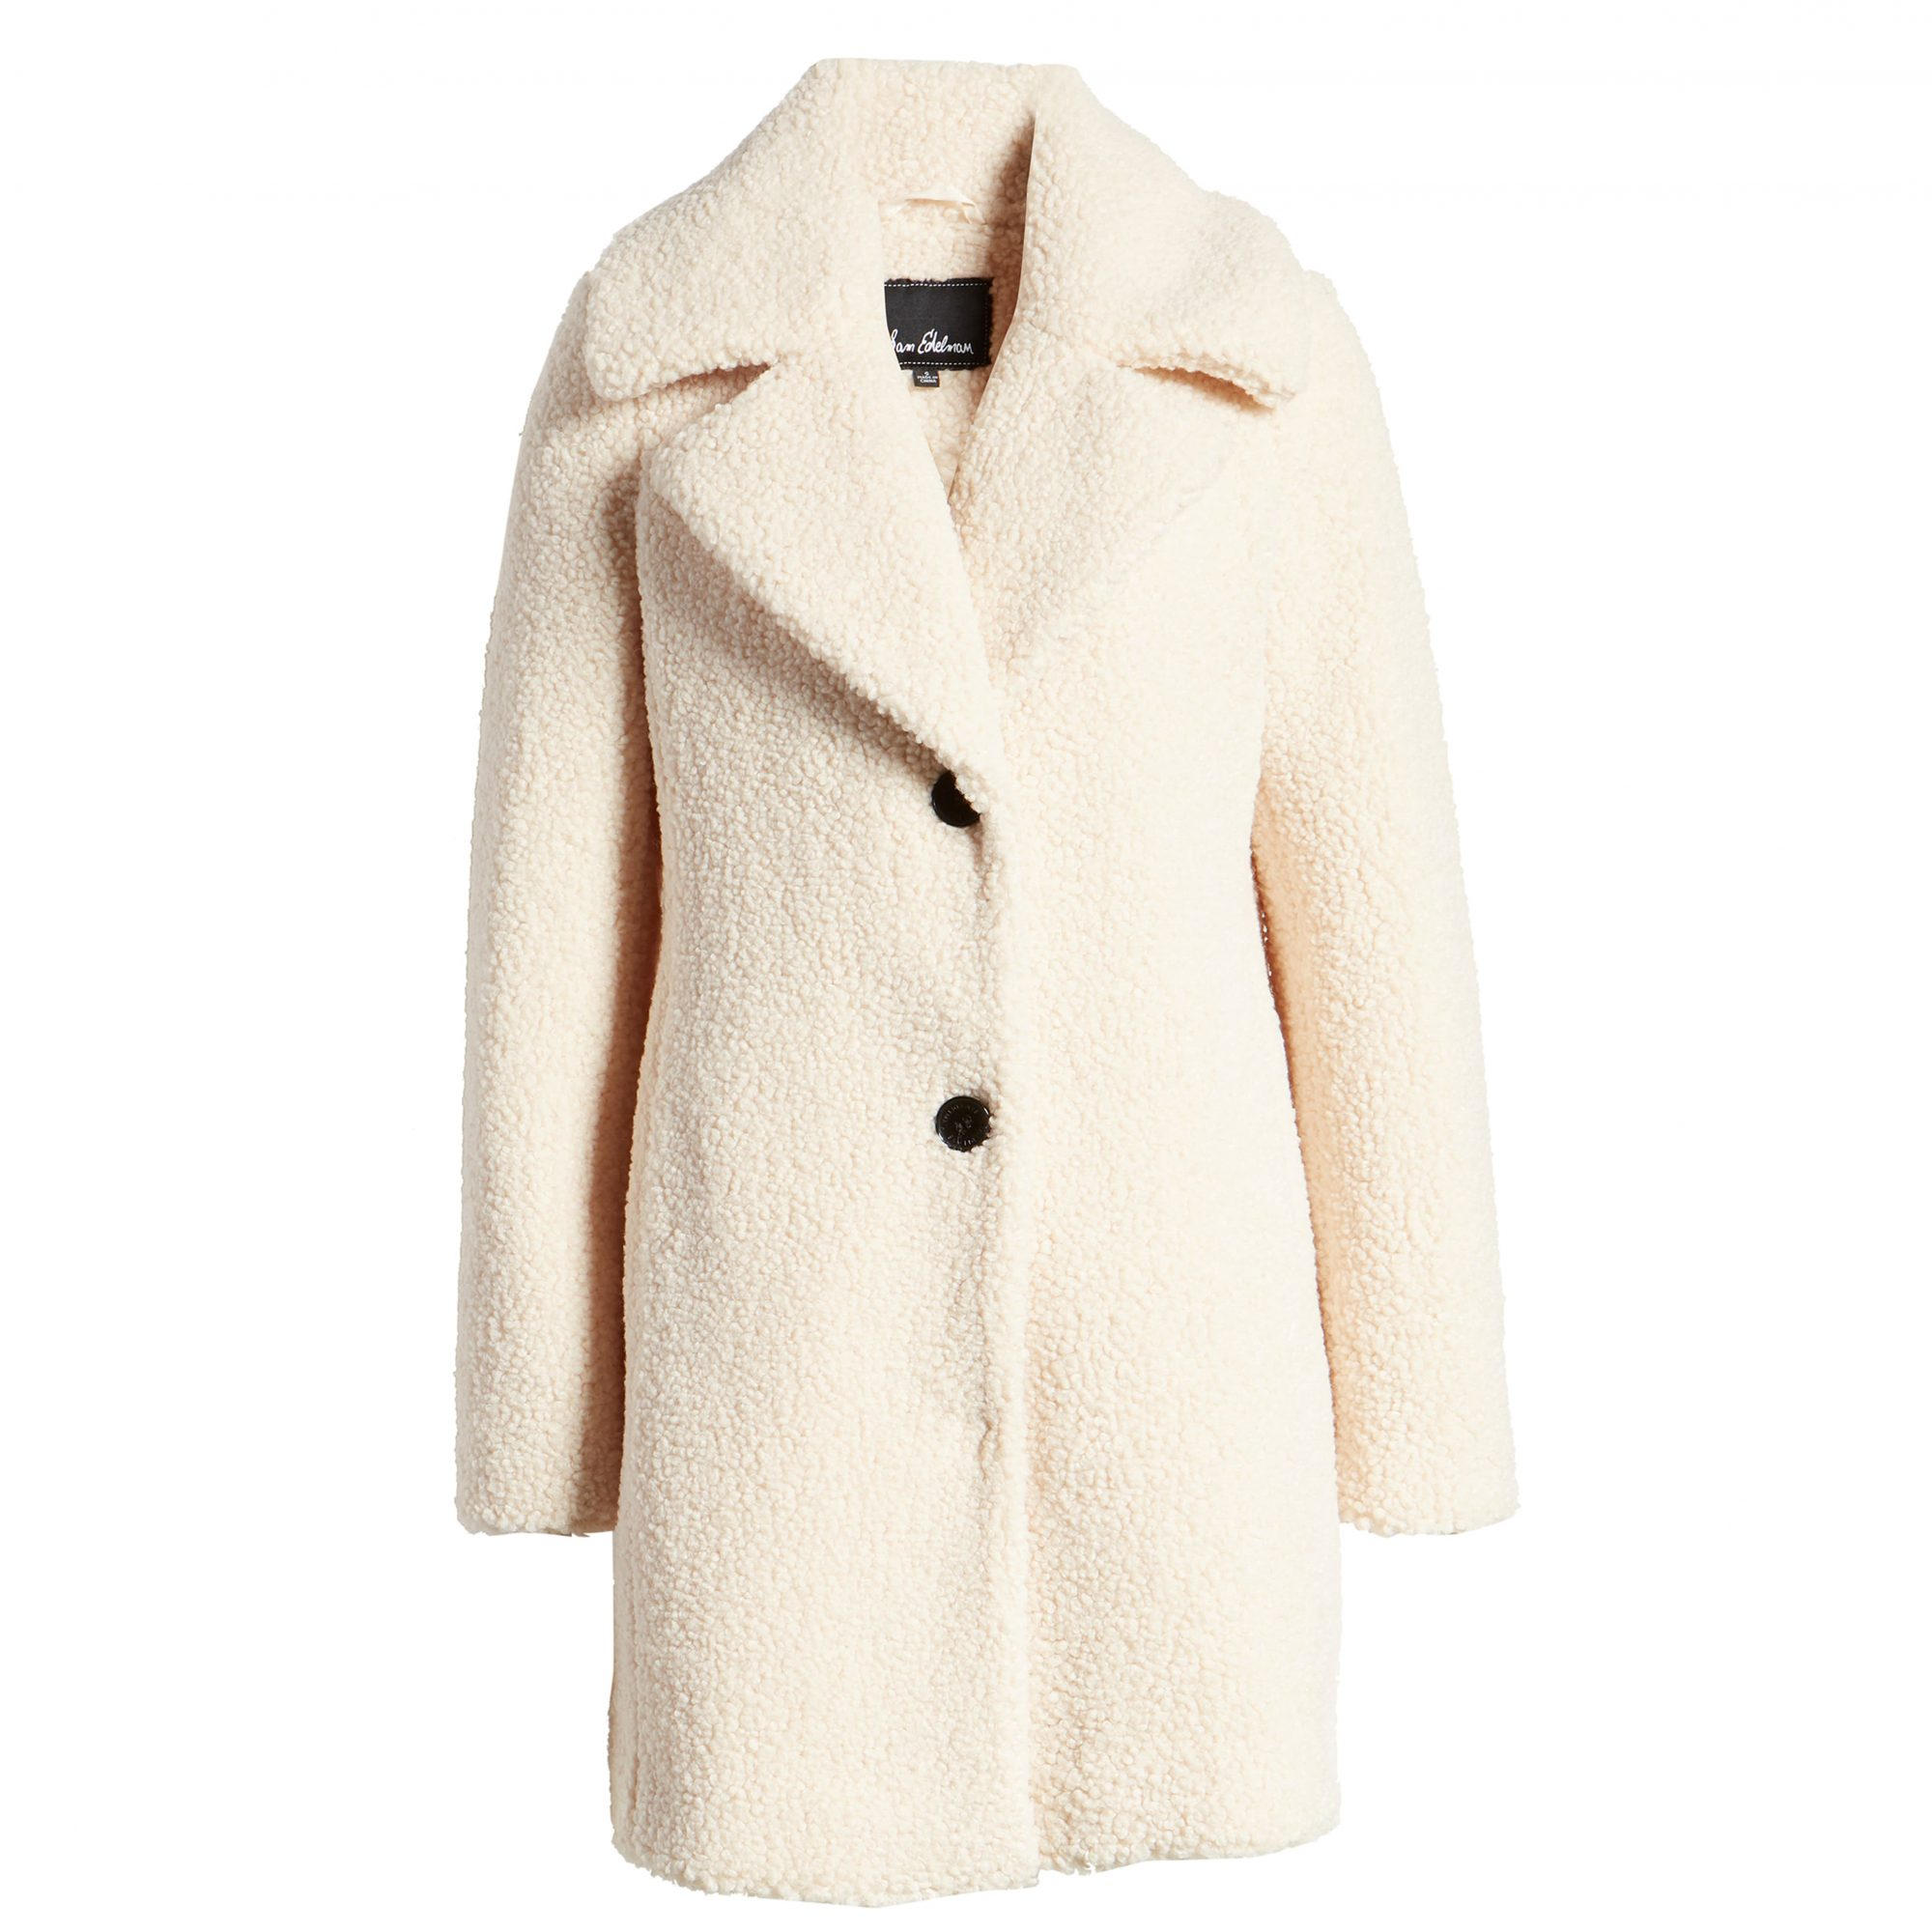 Sam Edelman Faux Fur Teddy Coat